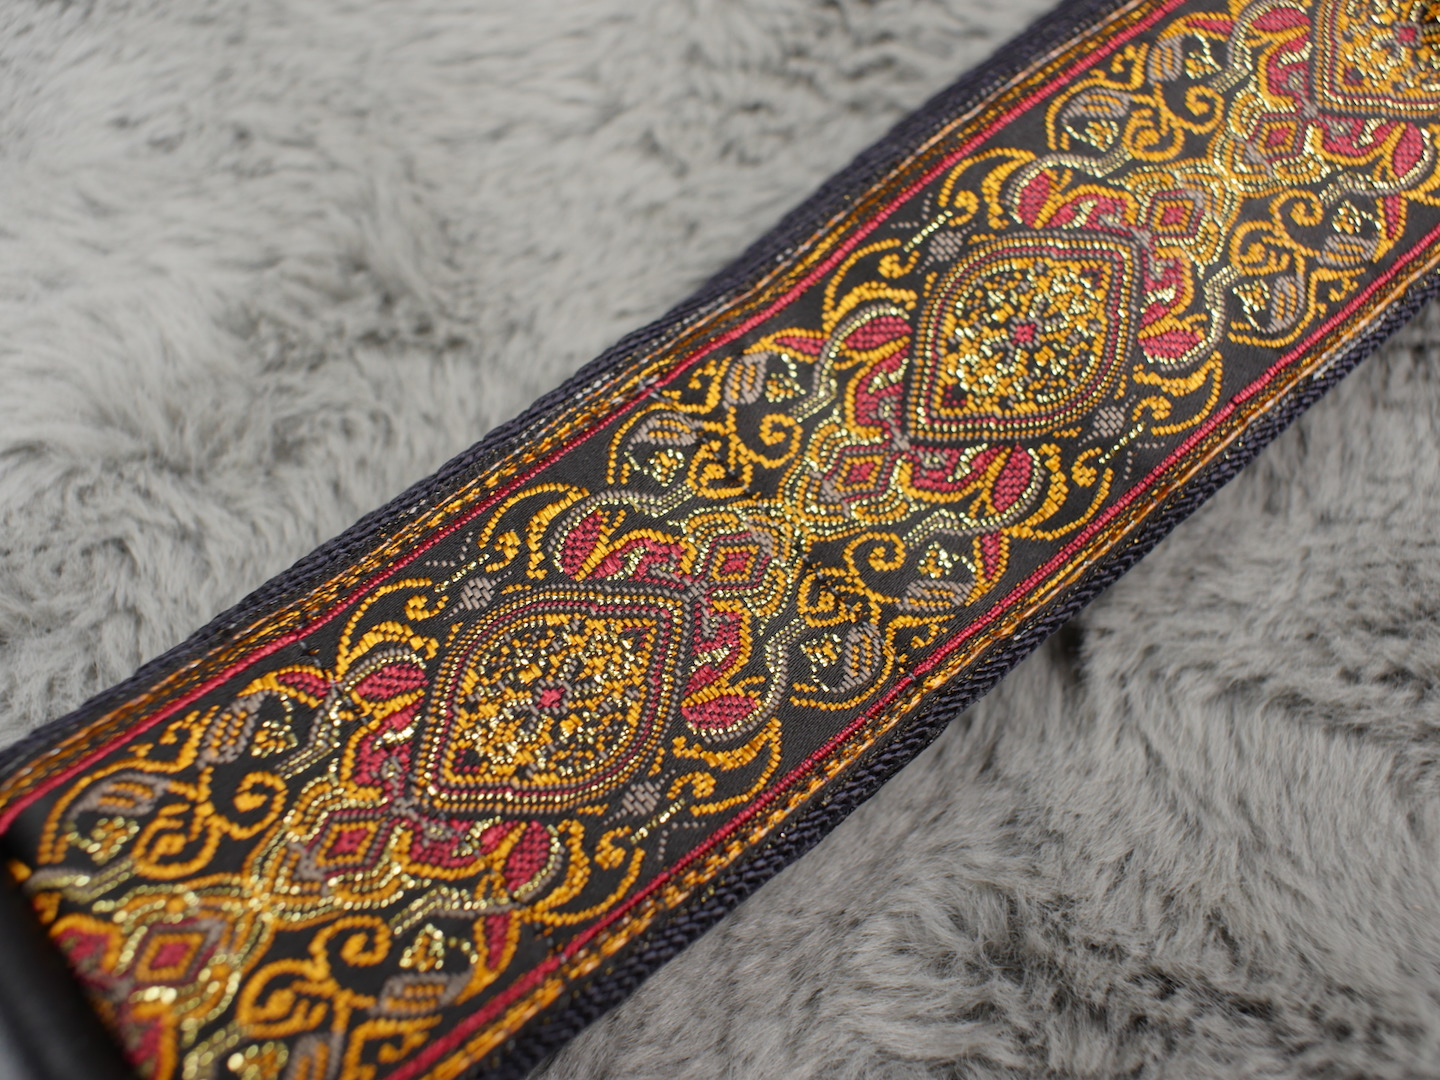 Air Straps Limited Edition 'Indus' Guitar Strap